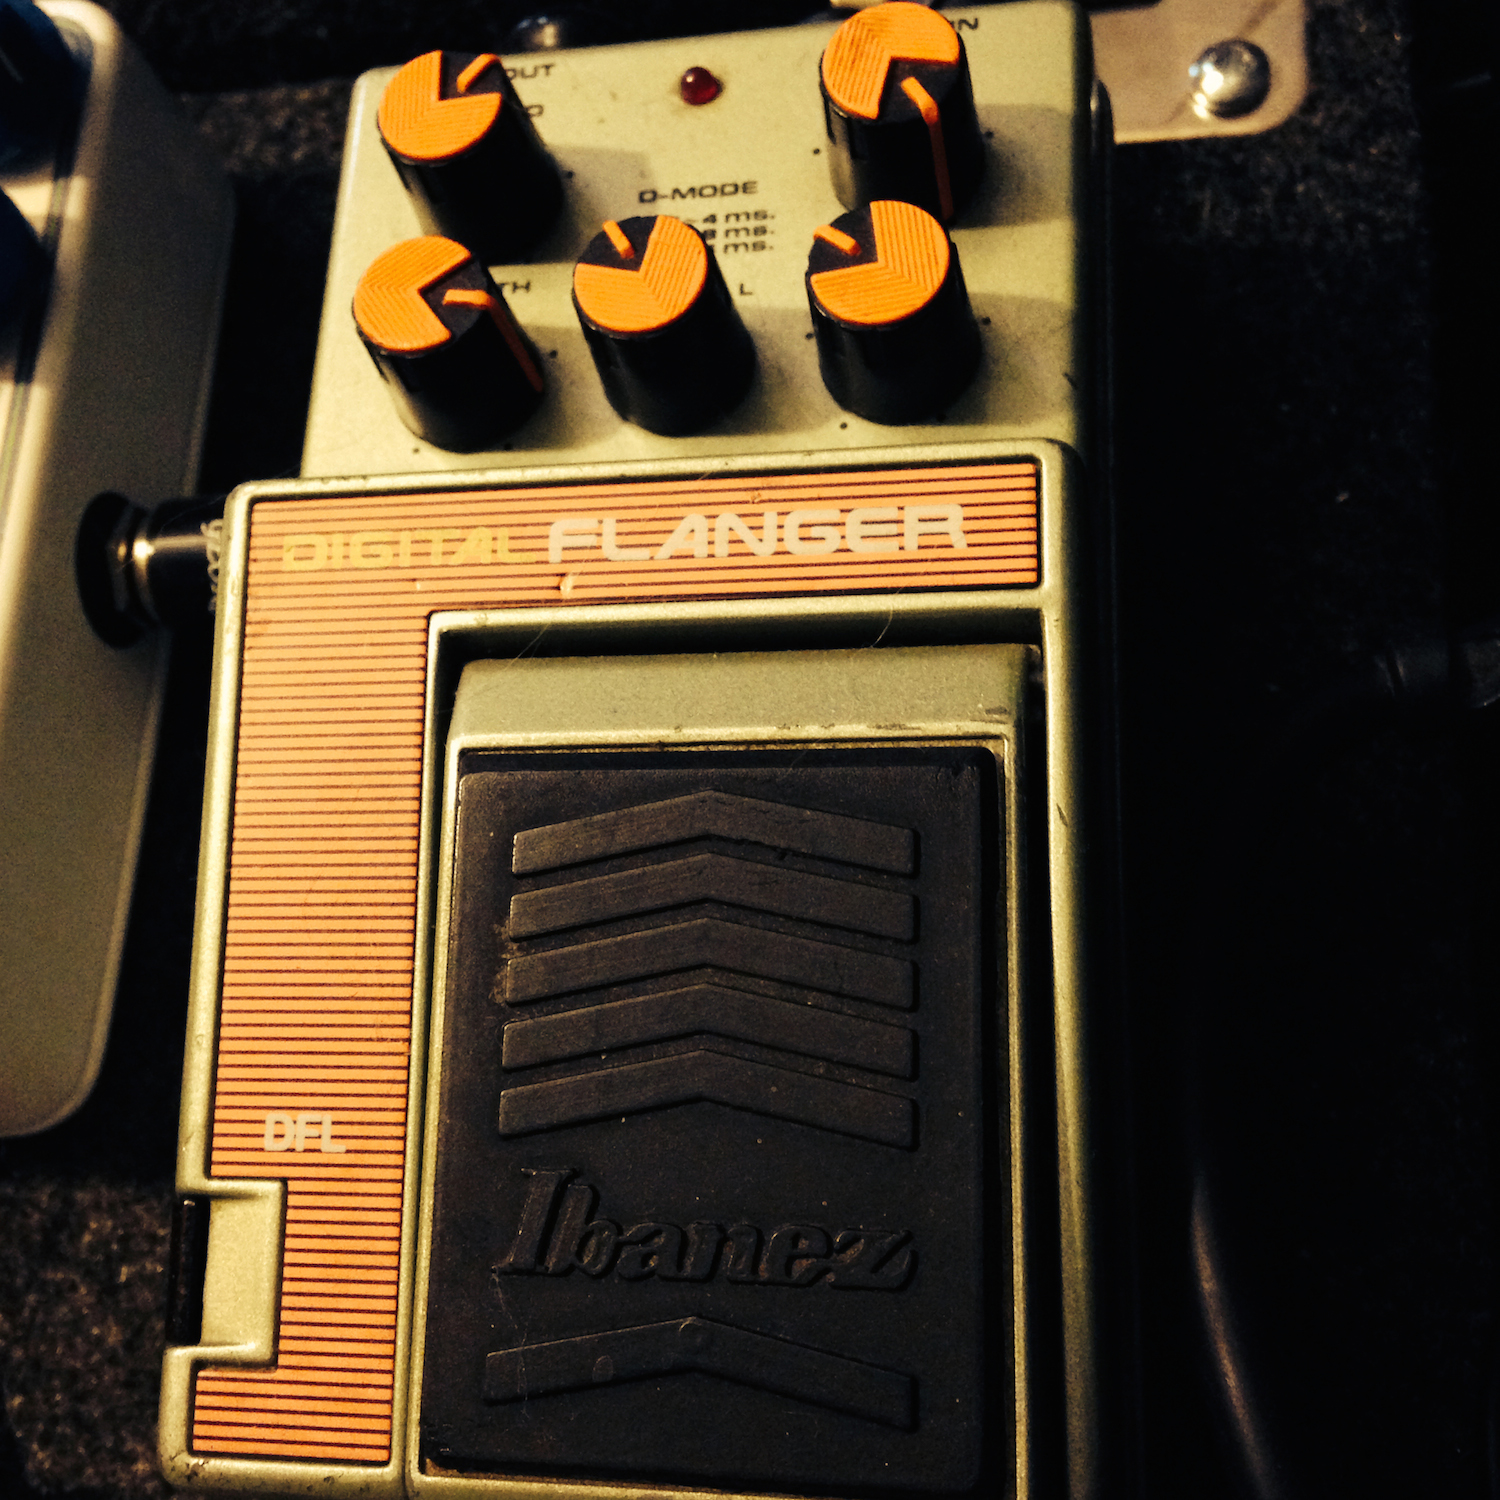 Ibanez DFL Flanger - Pedal of the Day